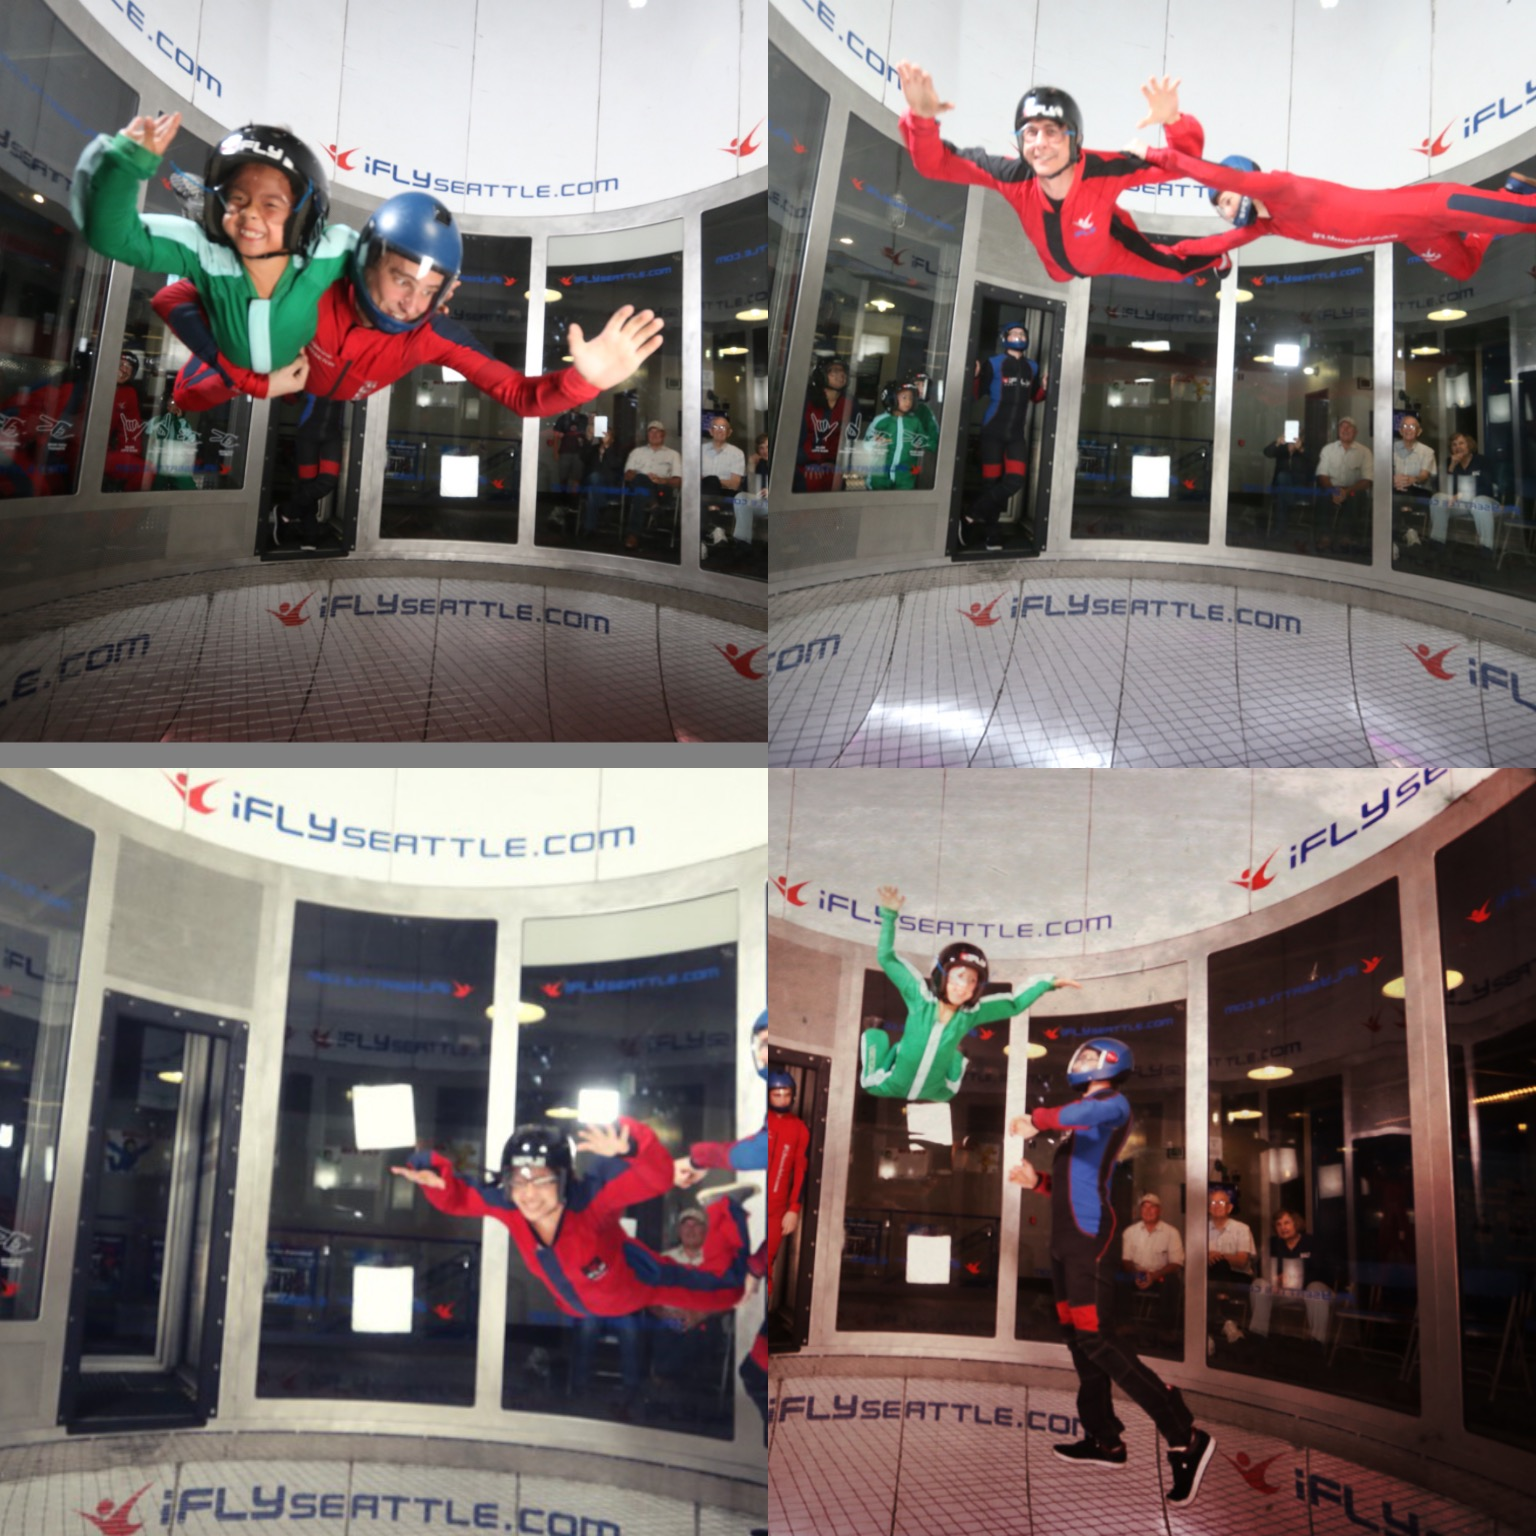 ifly seattle with kids